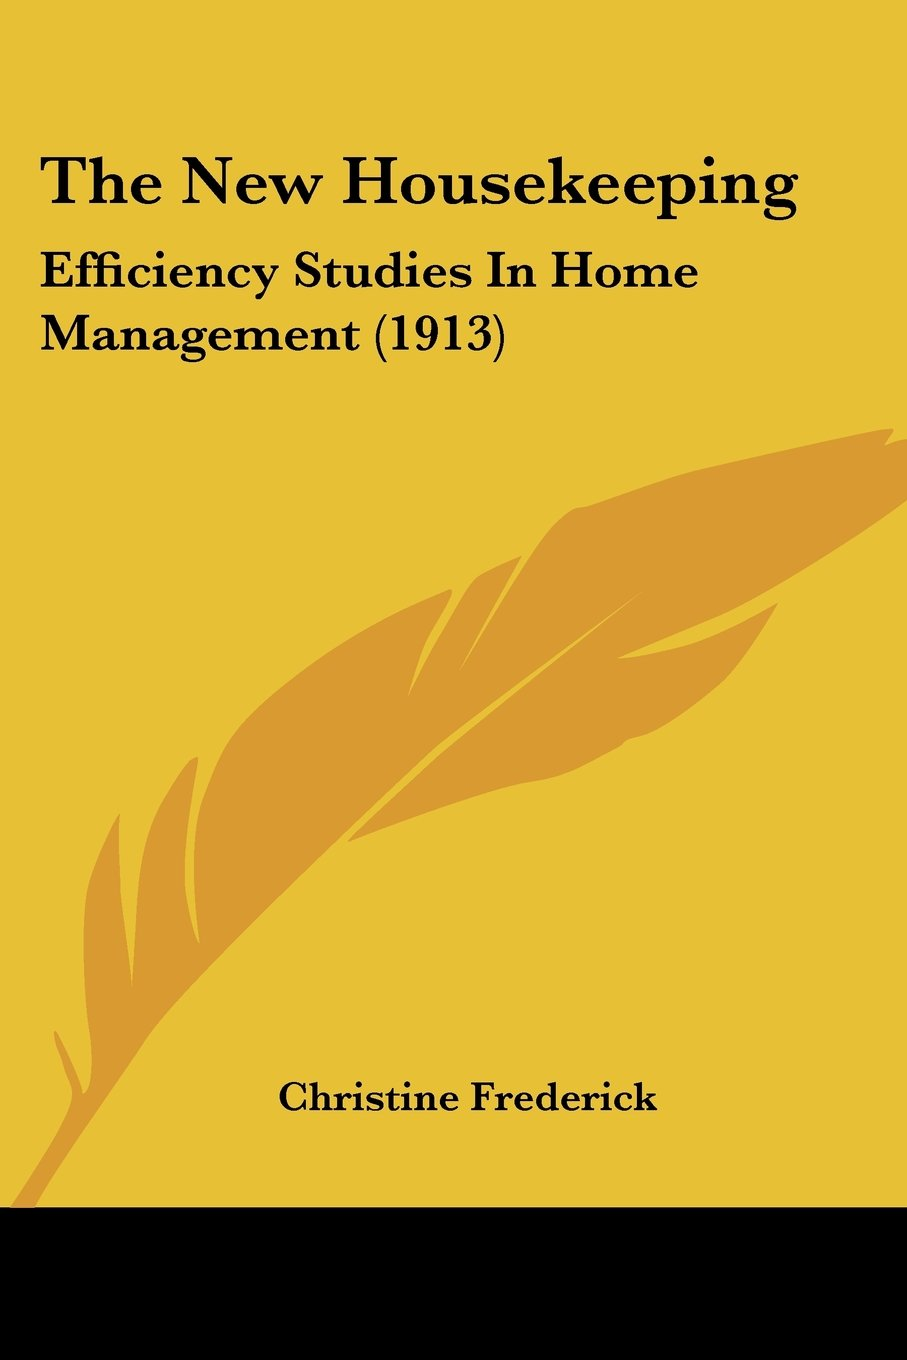 The New Housekeeping: Efficiency Studies In Home Management (1913) Text fb2 ebook